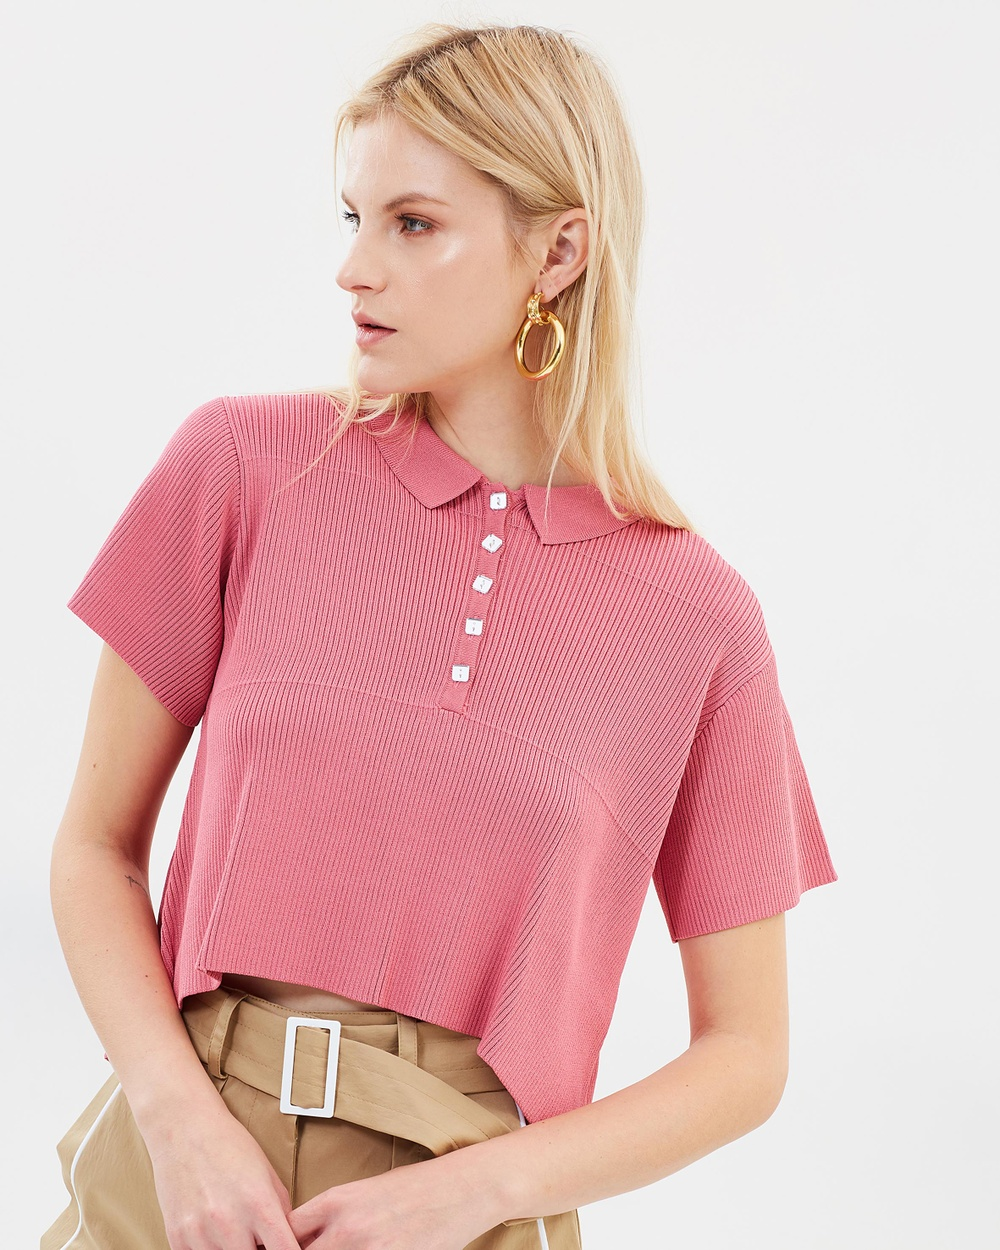 Manning Cartell Setting The Tone Polo Cropped tops Rose Setting The Tone Polo